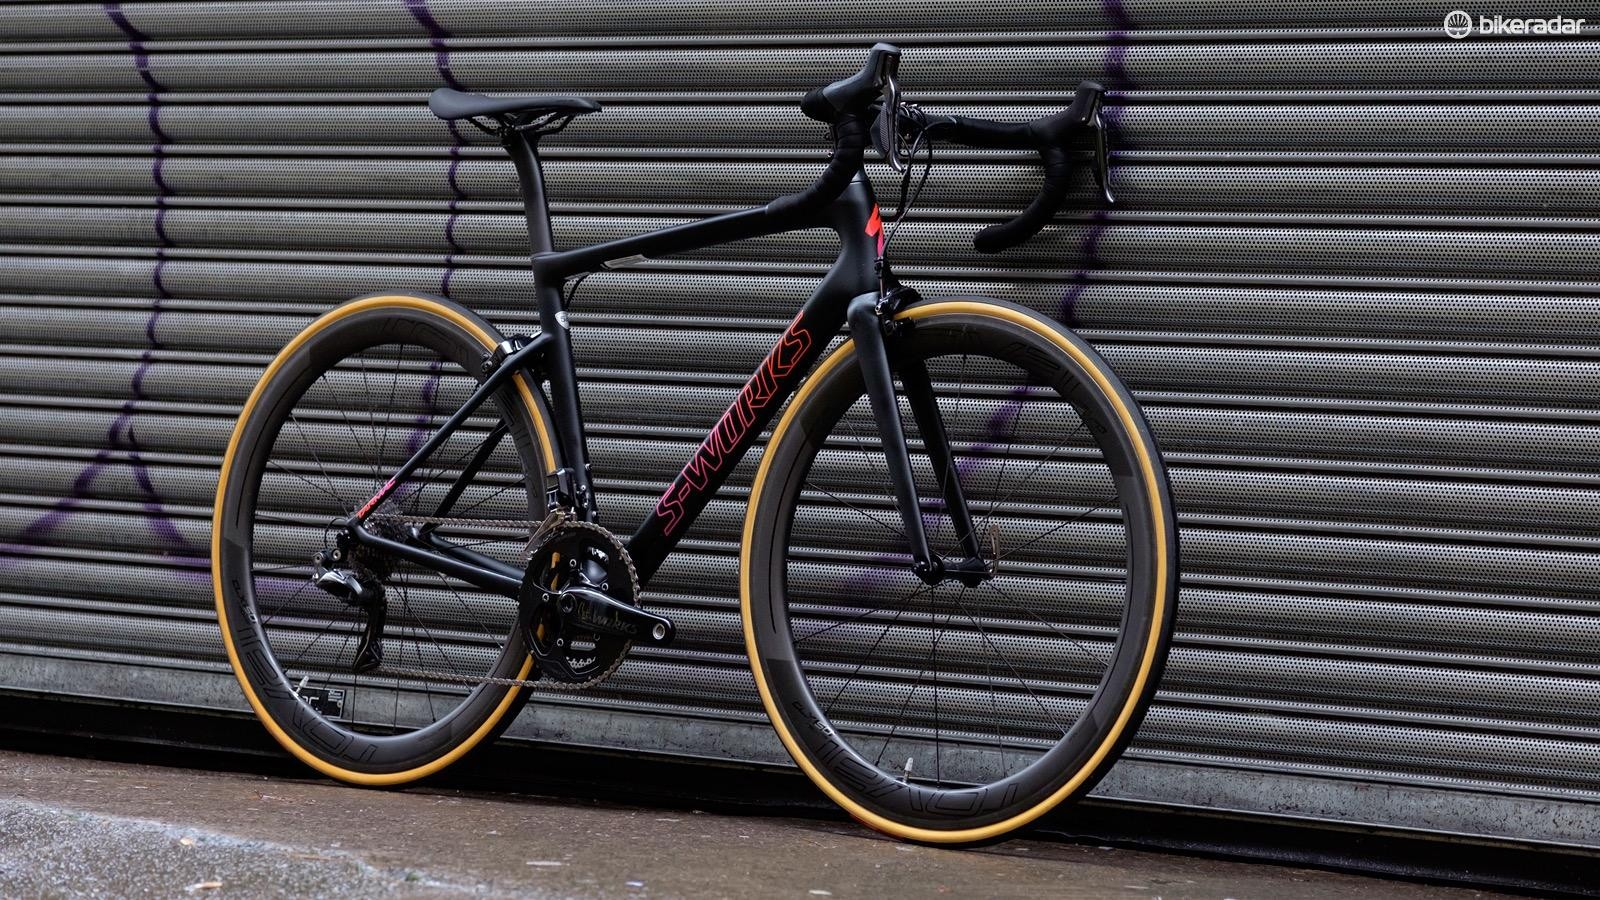 The new Unisex Tarmac replaces the Amira at Expert and S-Works level